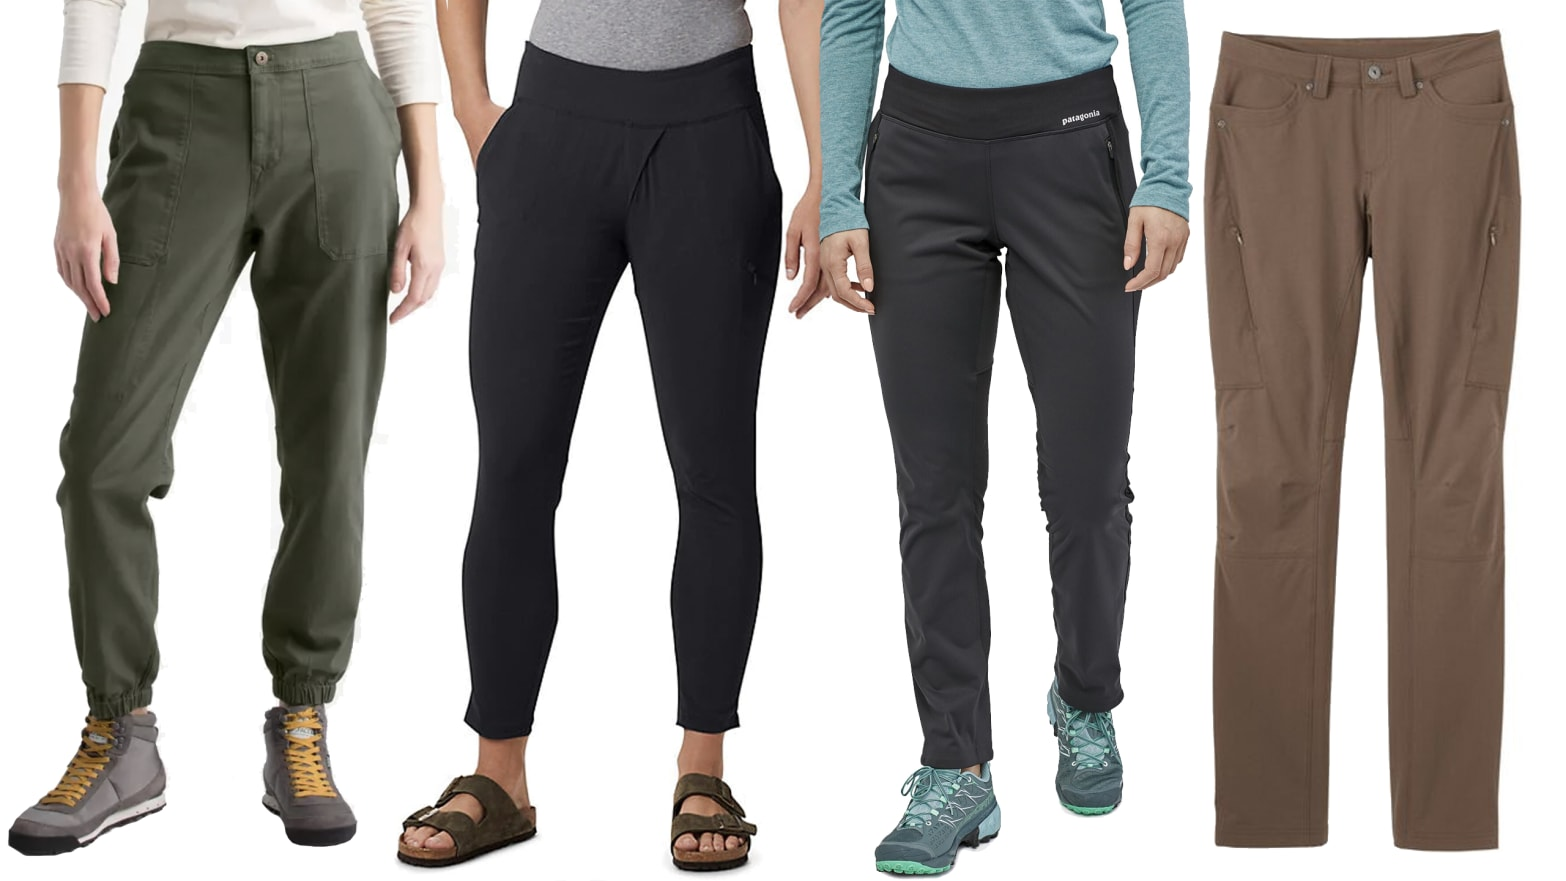 Womens Ladies High Waisted Zip Front Stretch Elasticated Leggings Trouser